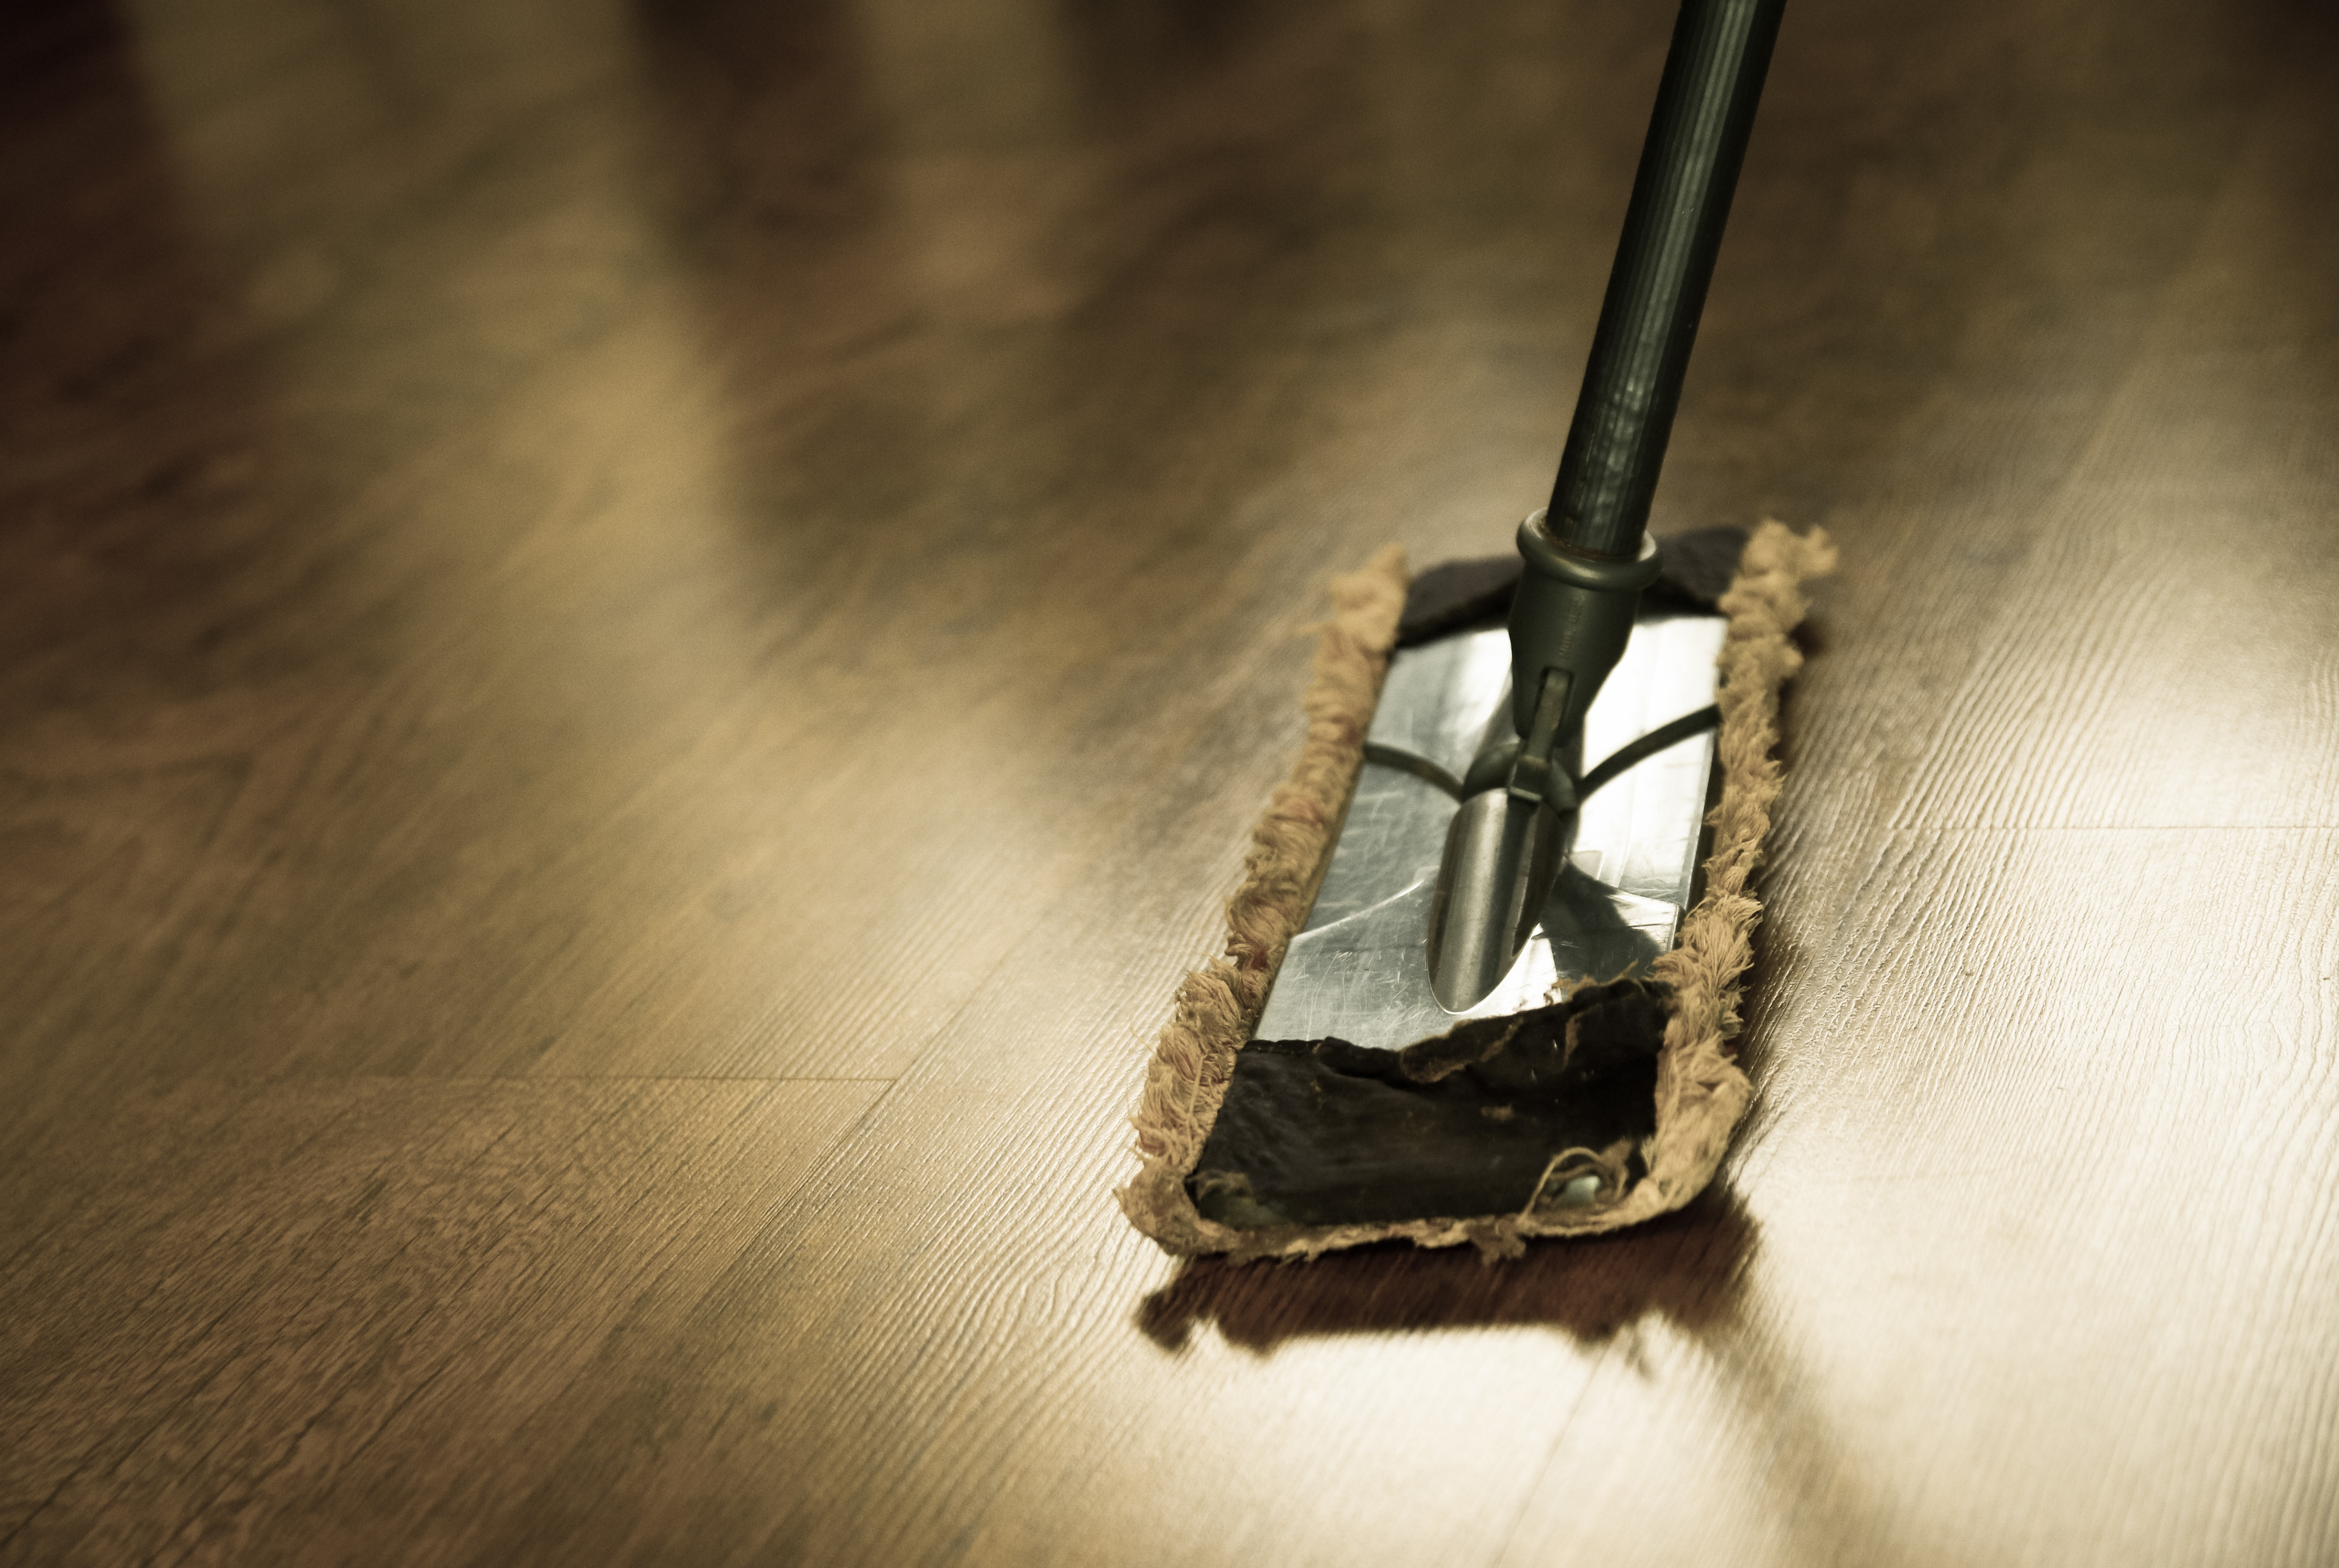 carpet Cleaning Services in N1